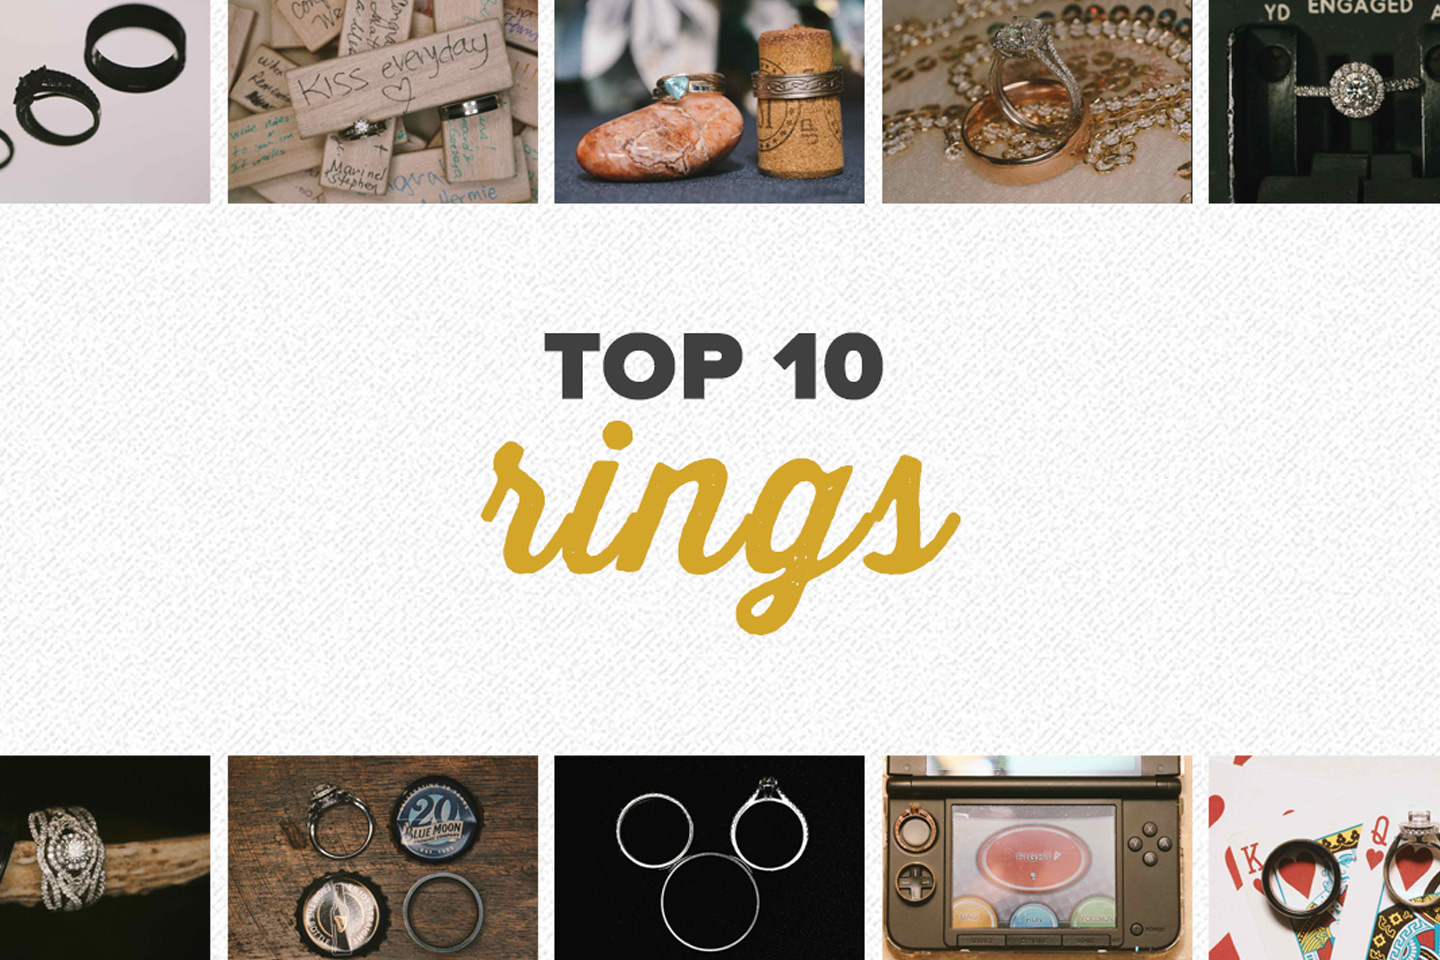 14051top 10 2015 | wedding ring photos